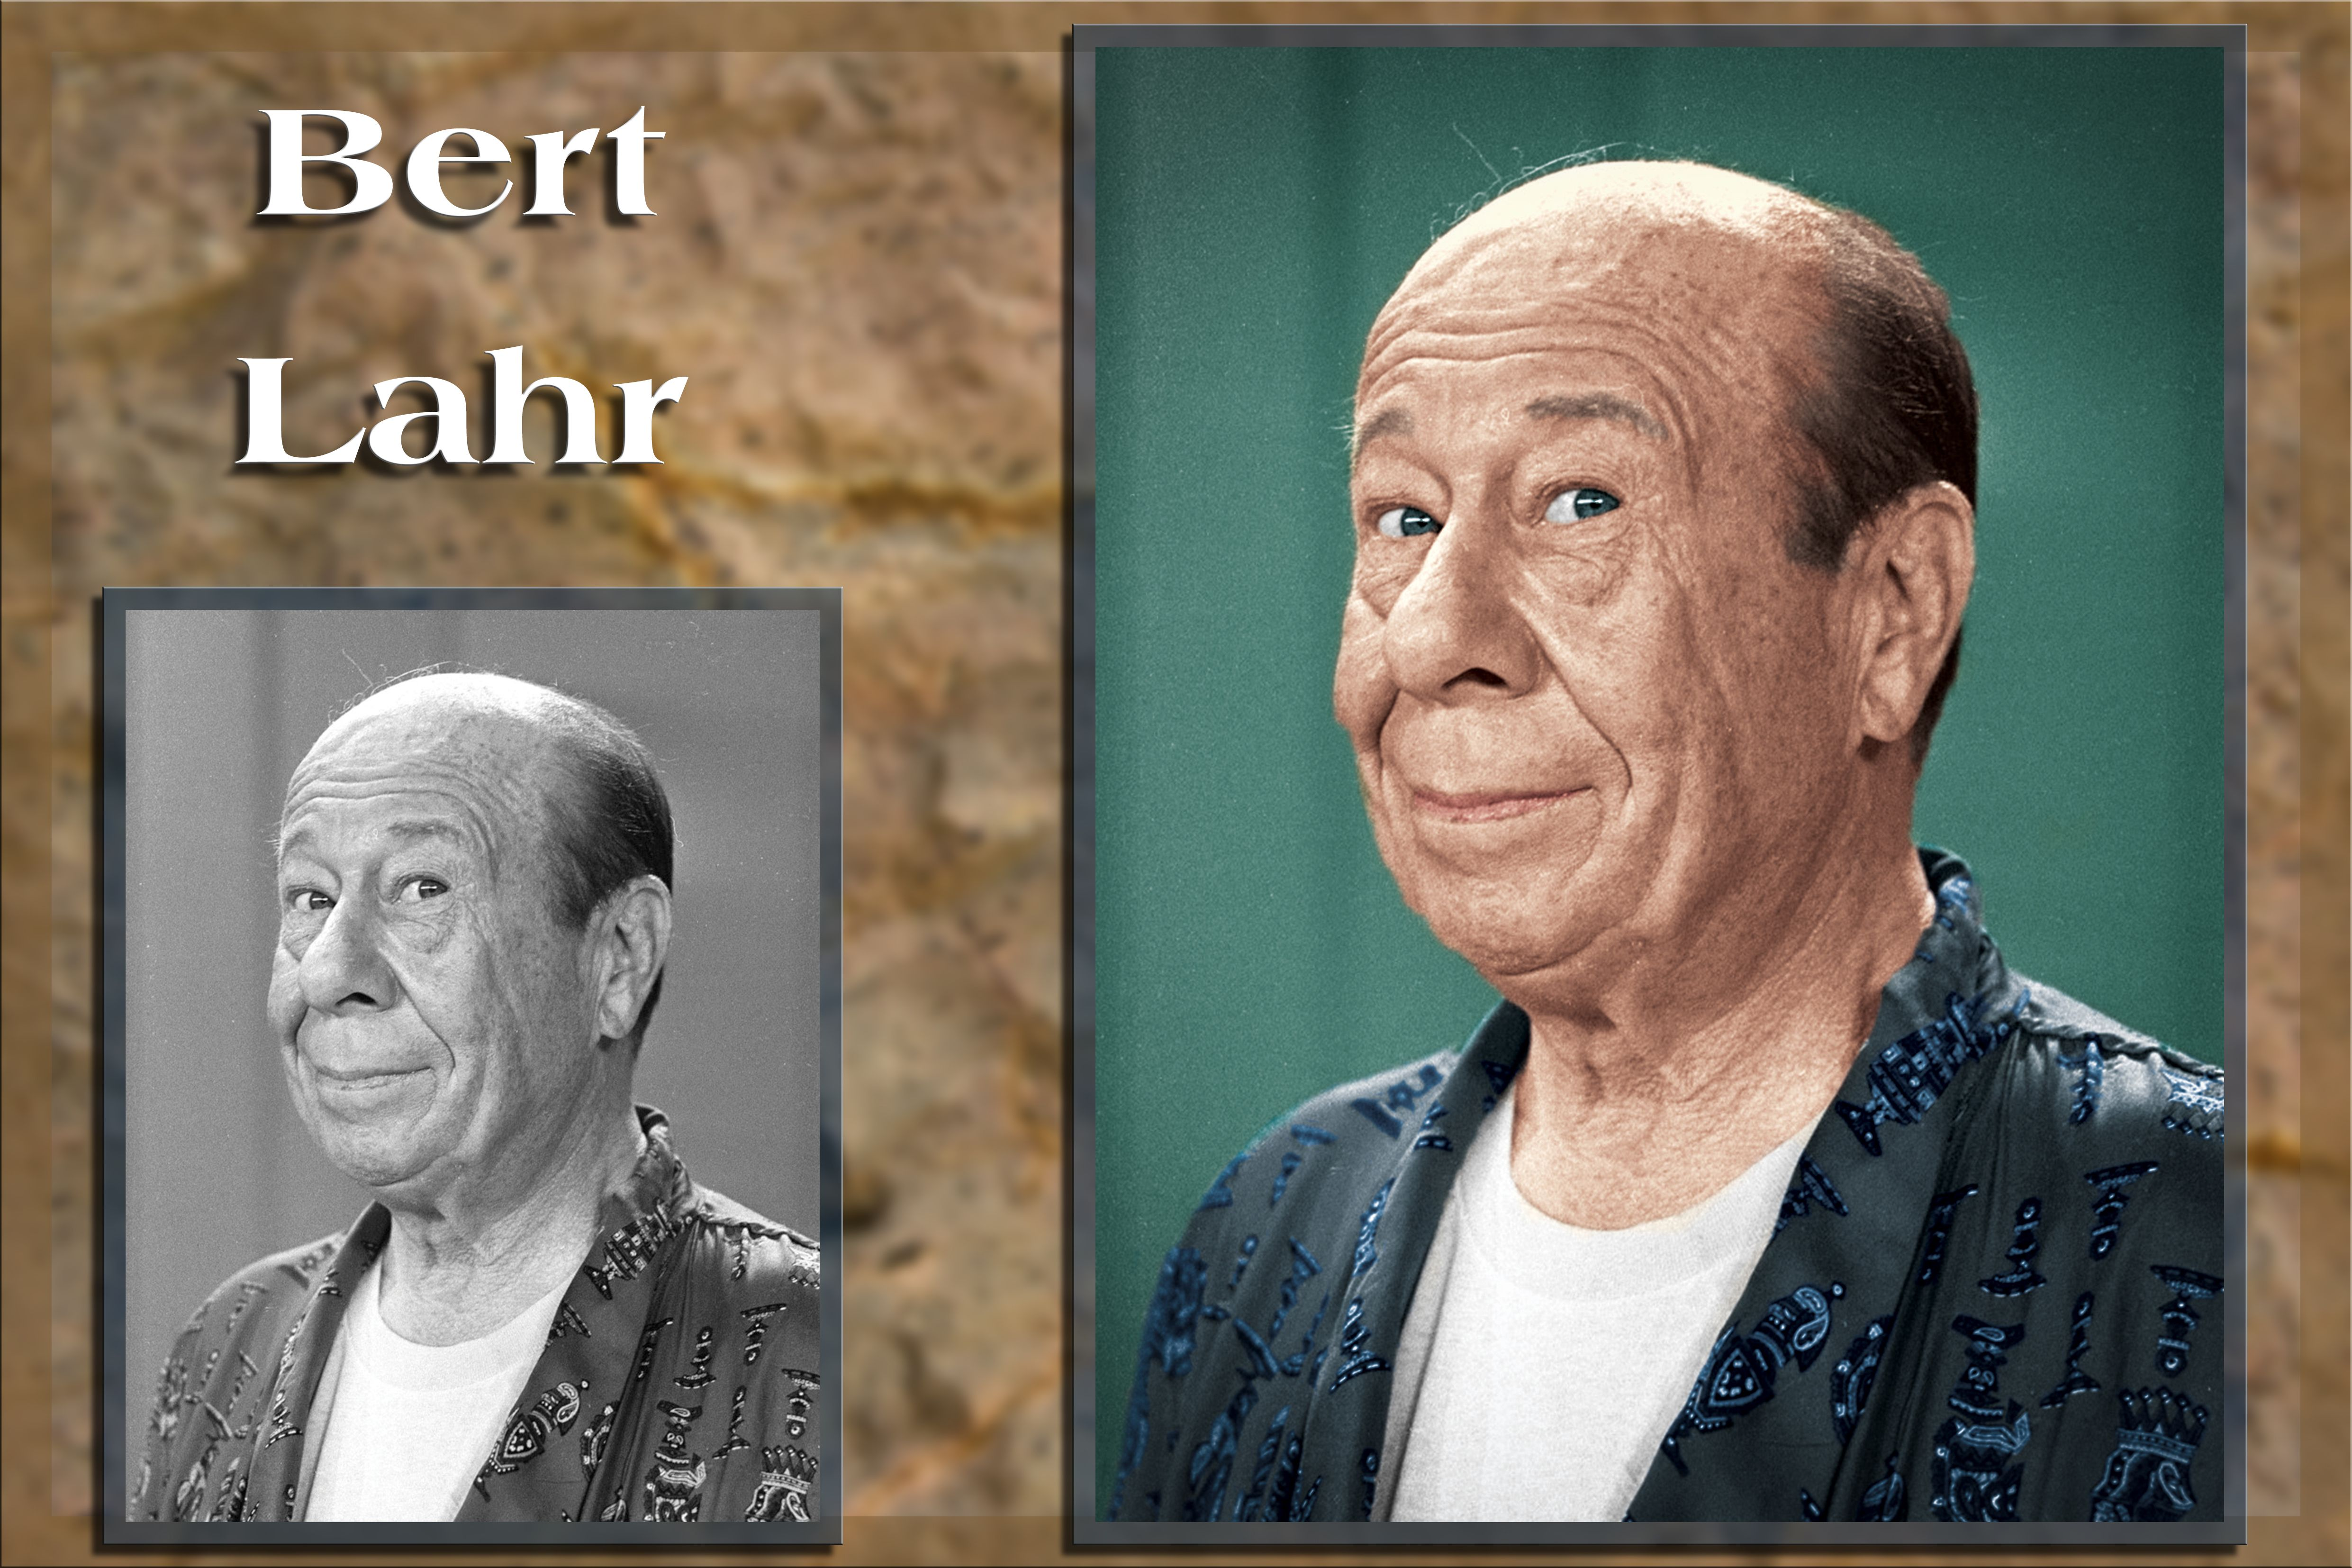 Bert Lahr (born Irving Lahrheim; August 13, 1895 – December 4, 1967) Lahr is remembered largely for his role as Kansas farmworker Zeke and the Cowardly Lion in The Wizard of Oz (1939).